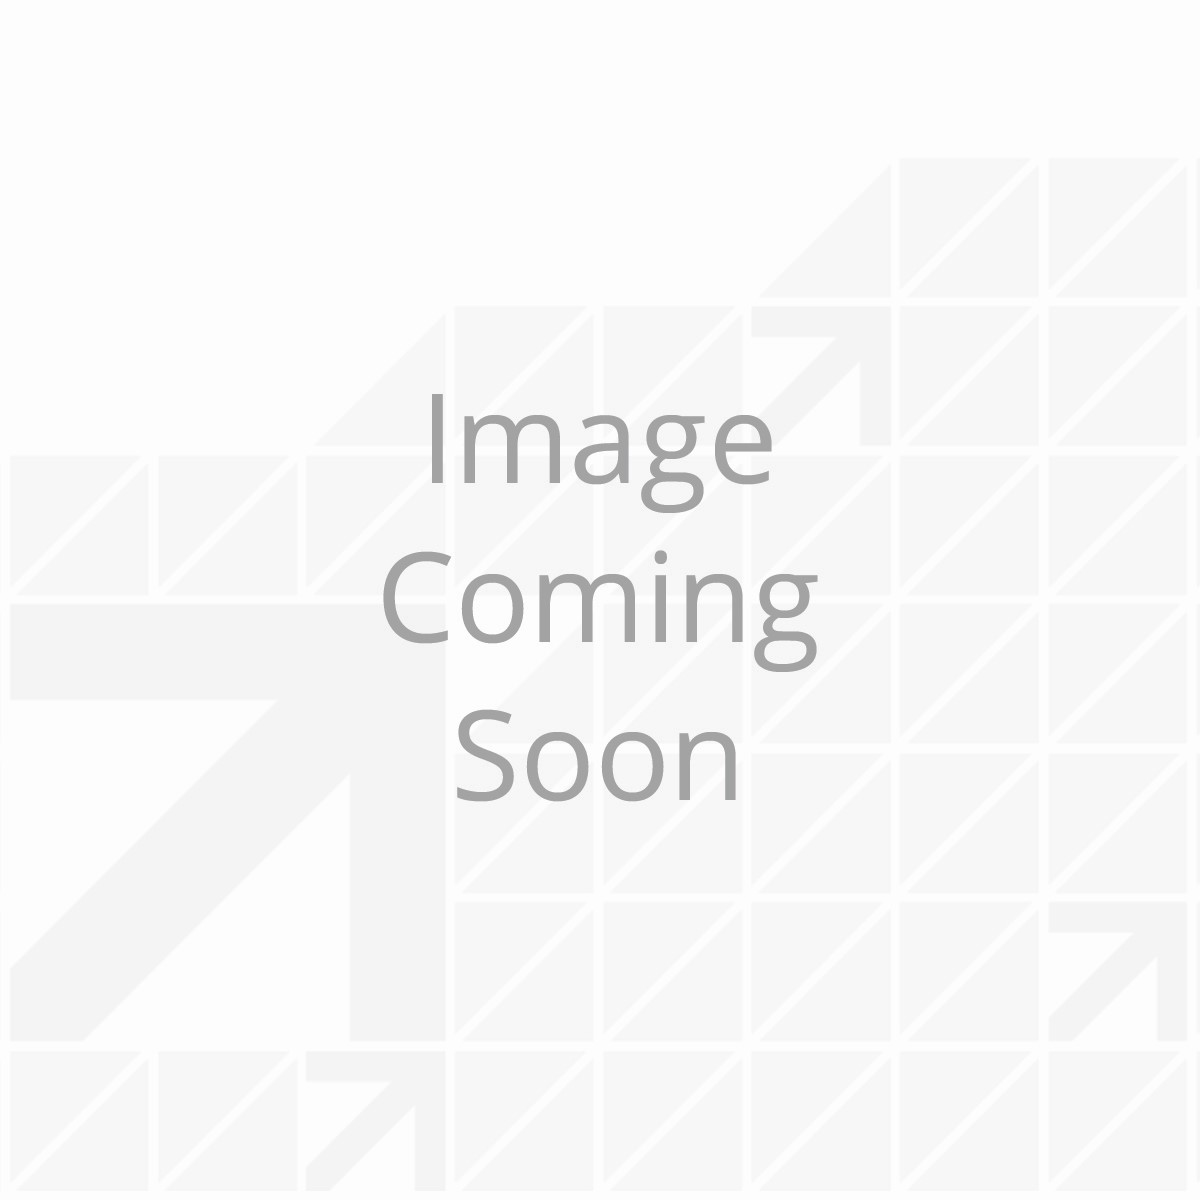 Flex Guard Single Kit with Hardware